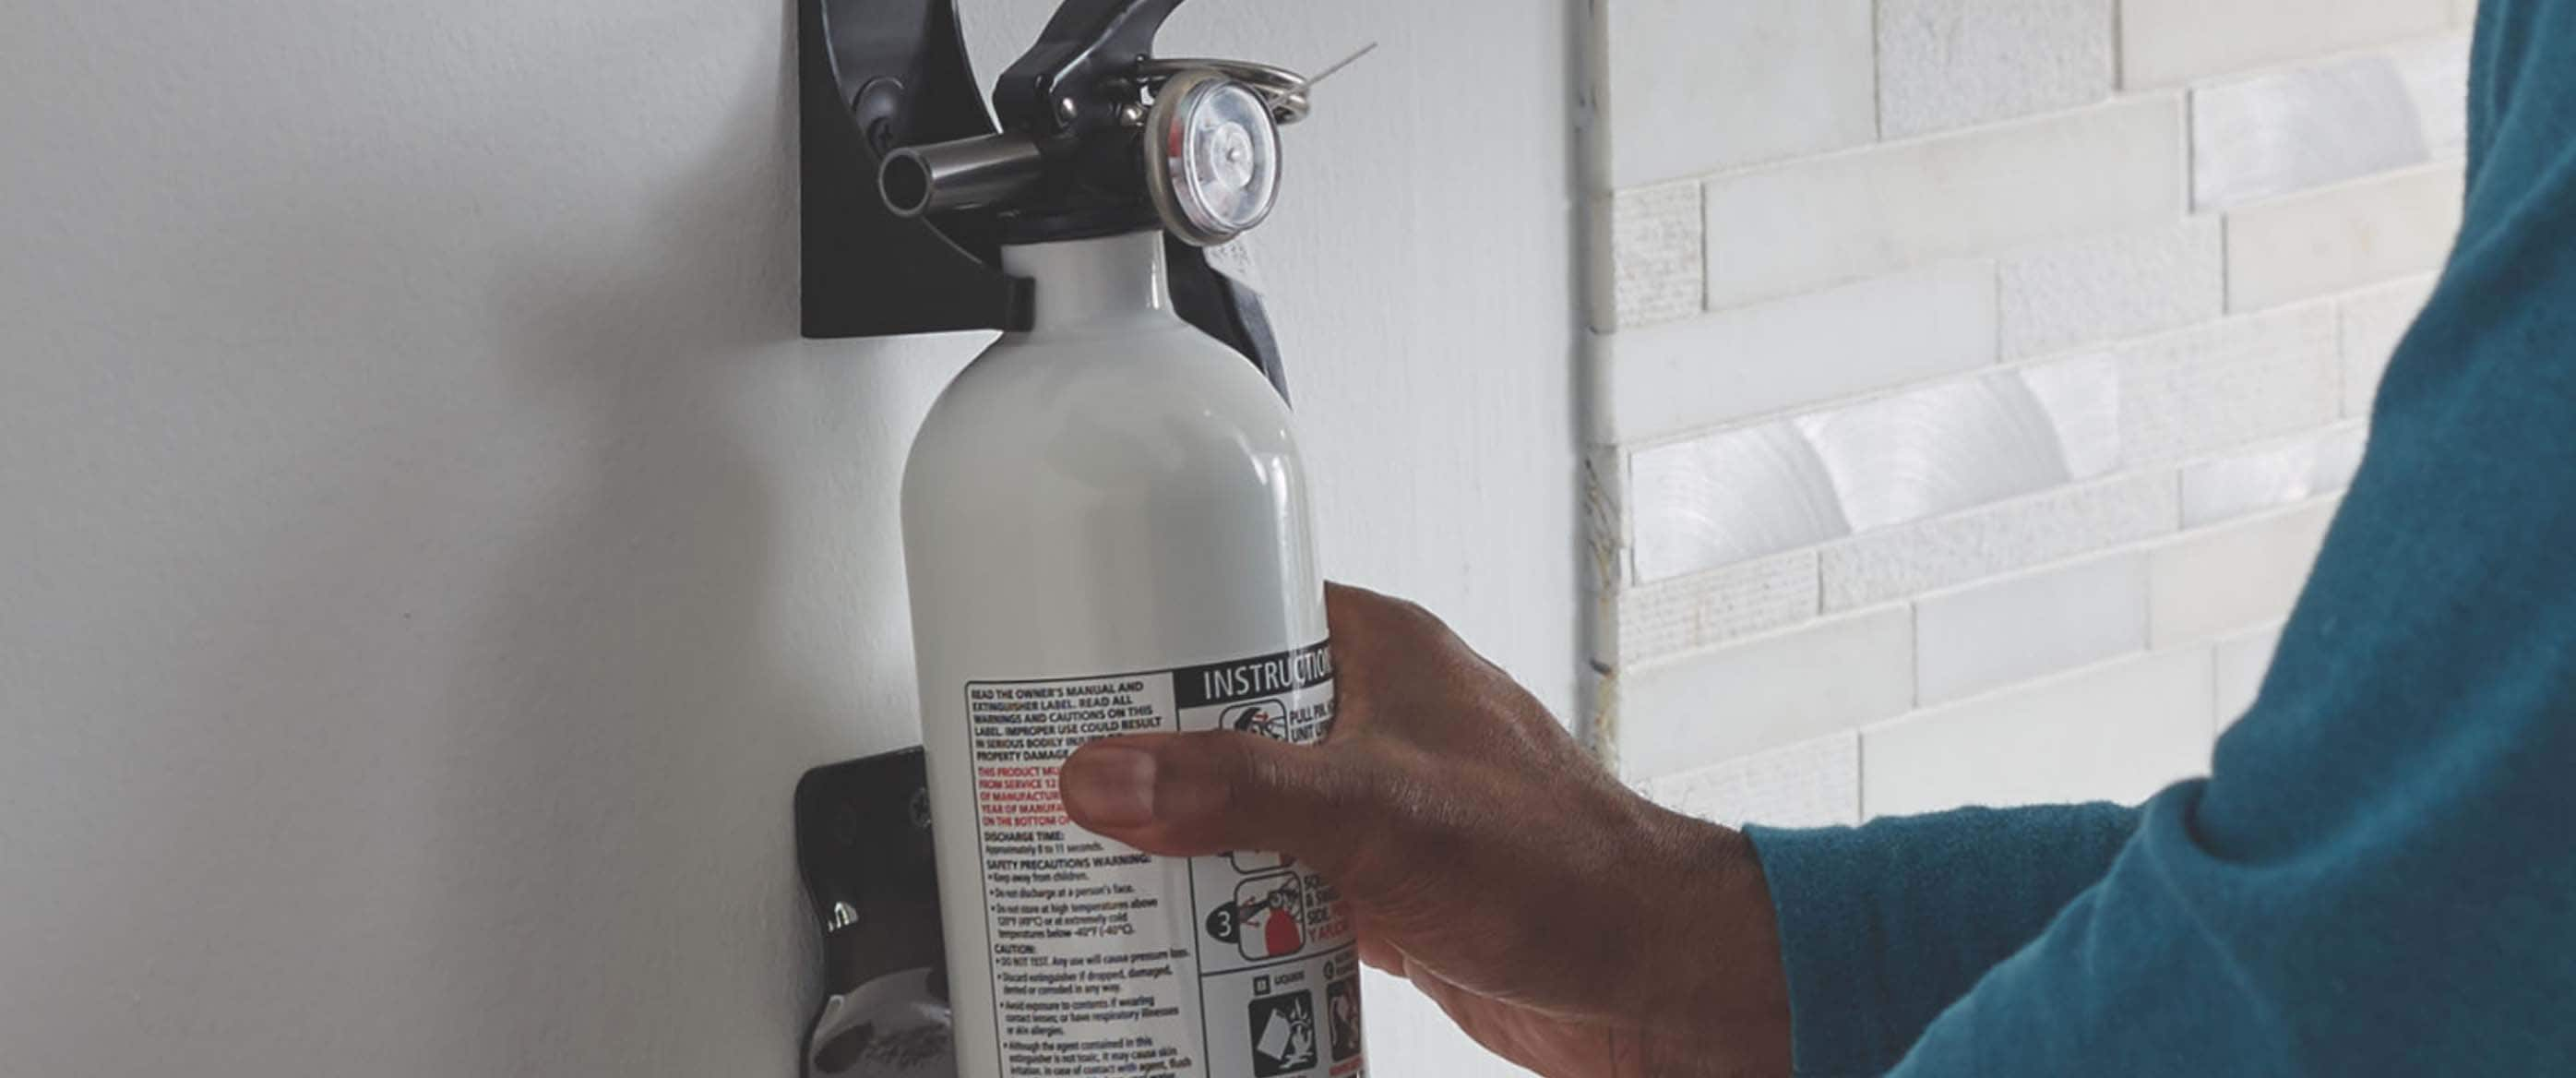 NFPA 10 Fire Extinguisher Codes